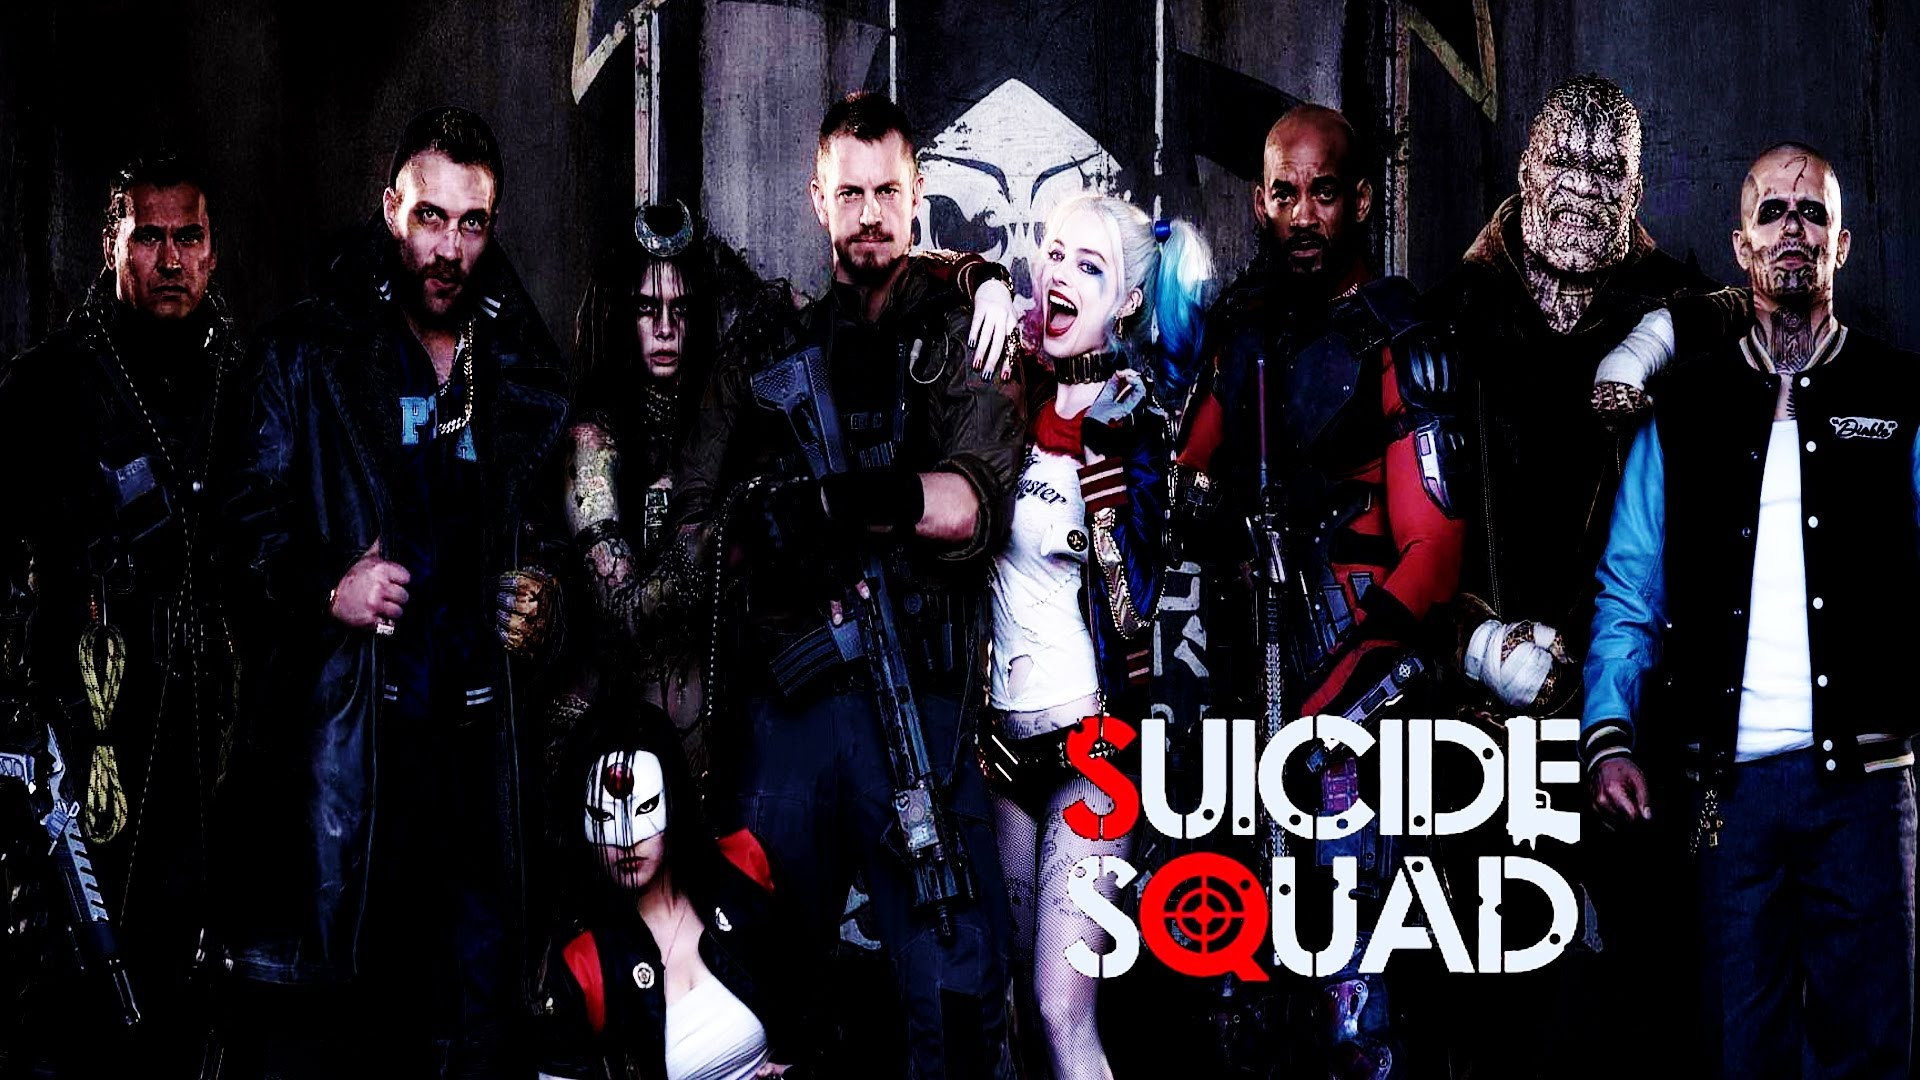 1920x1080 Suicide Squad Full HD Wallpaper and Background |  | ID:776924